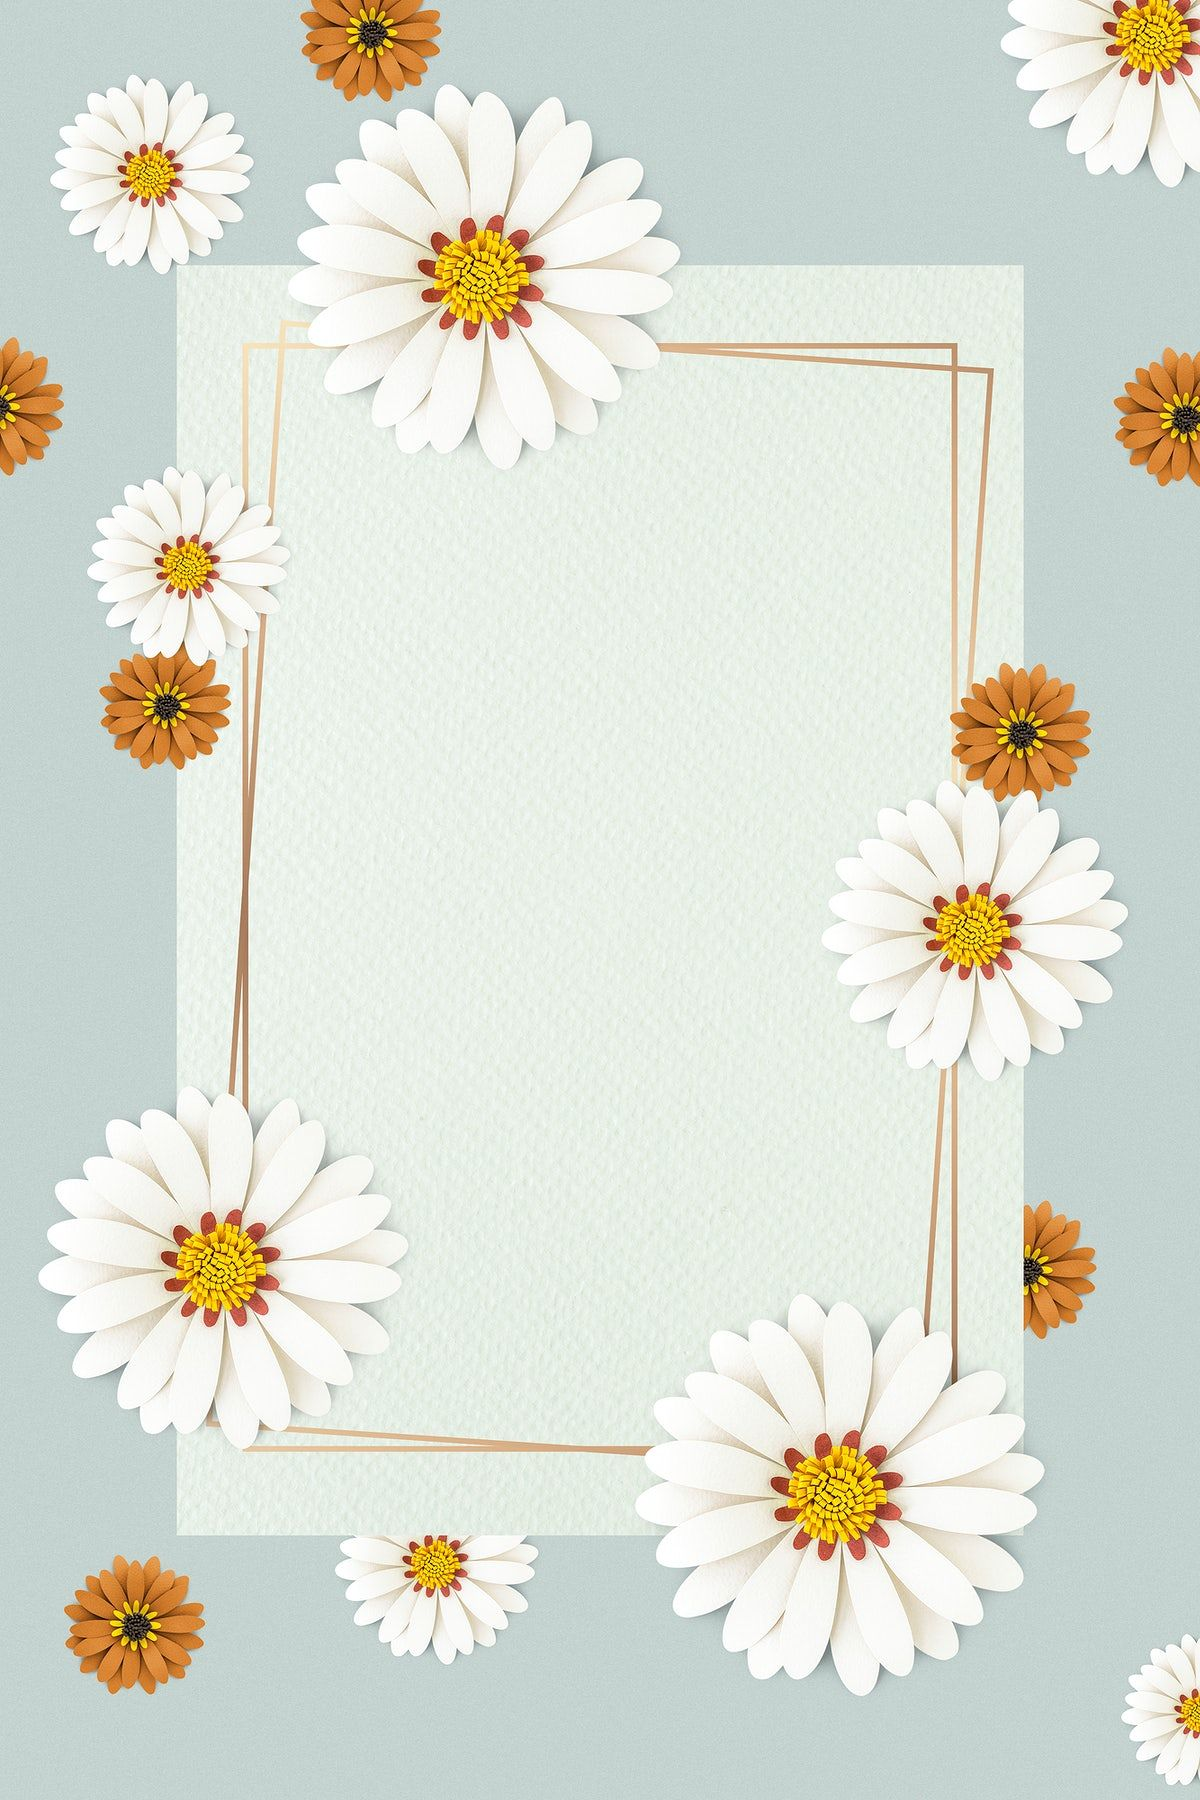 Download Premium Psd Of White Paper Craft Daisy Flower On Light Blue Background By Minty About Daisy Blue Frame Pattern Paper Texture And G